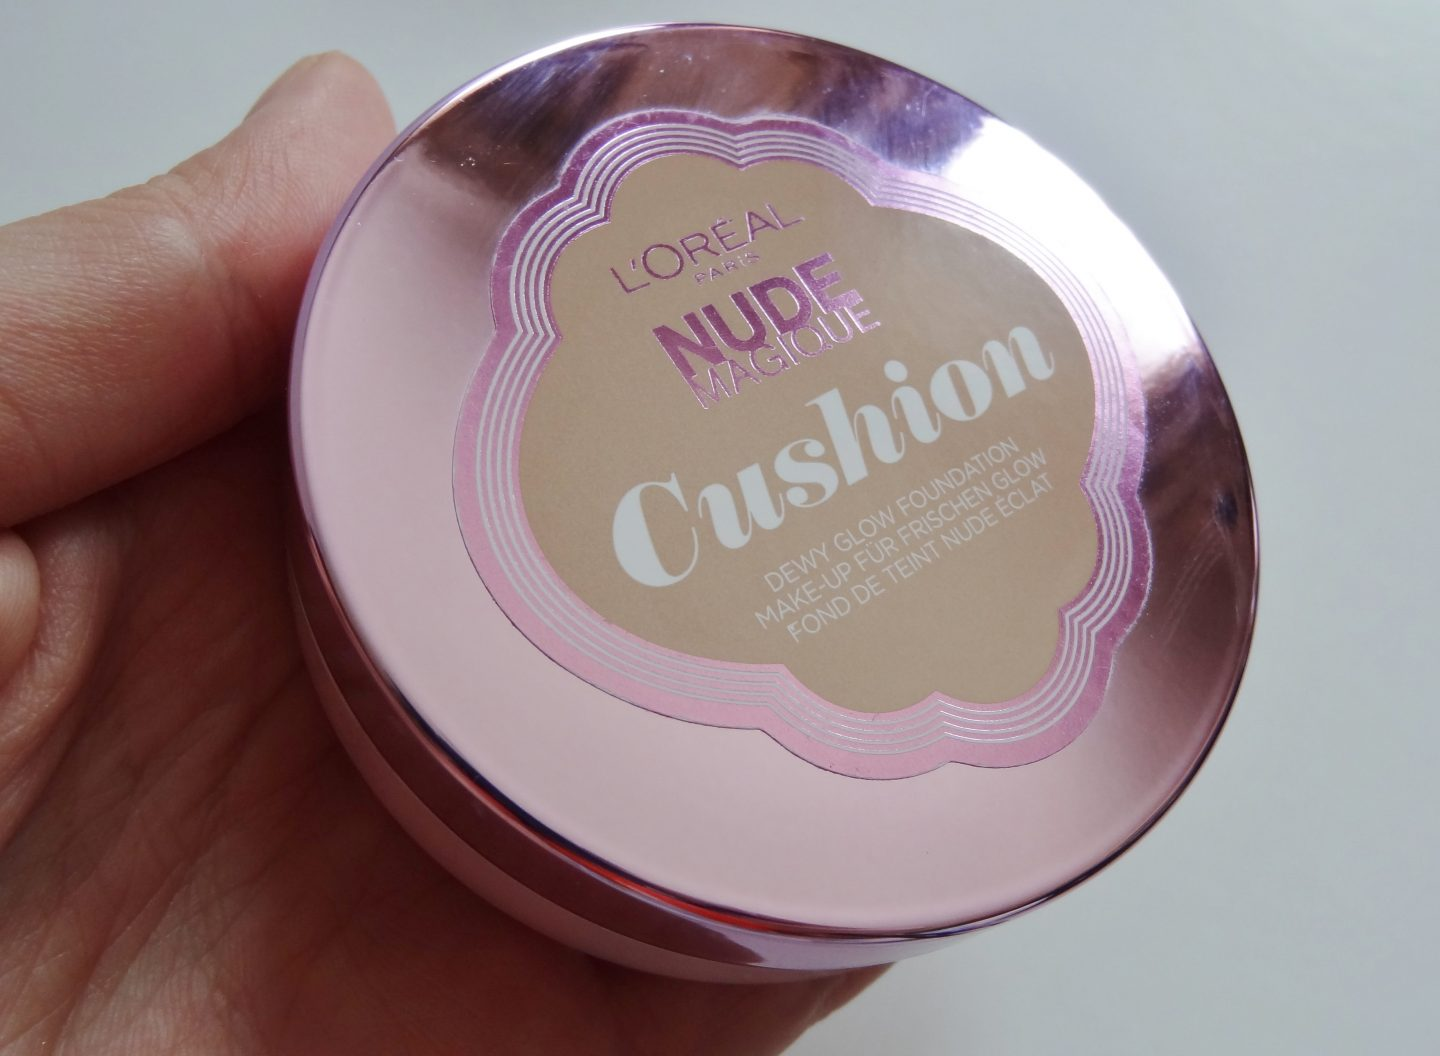 REVIEW: L'Oreal Paris Nude Magique Cushion Foundation (No.4 & No.7)